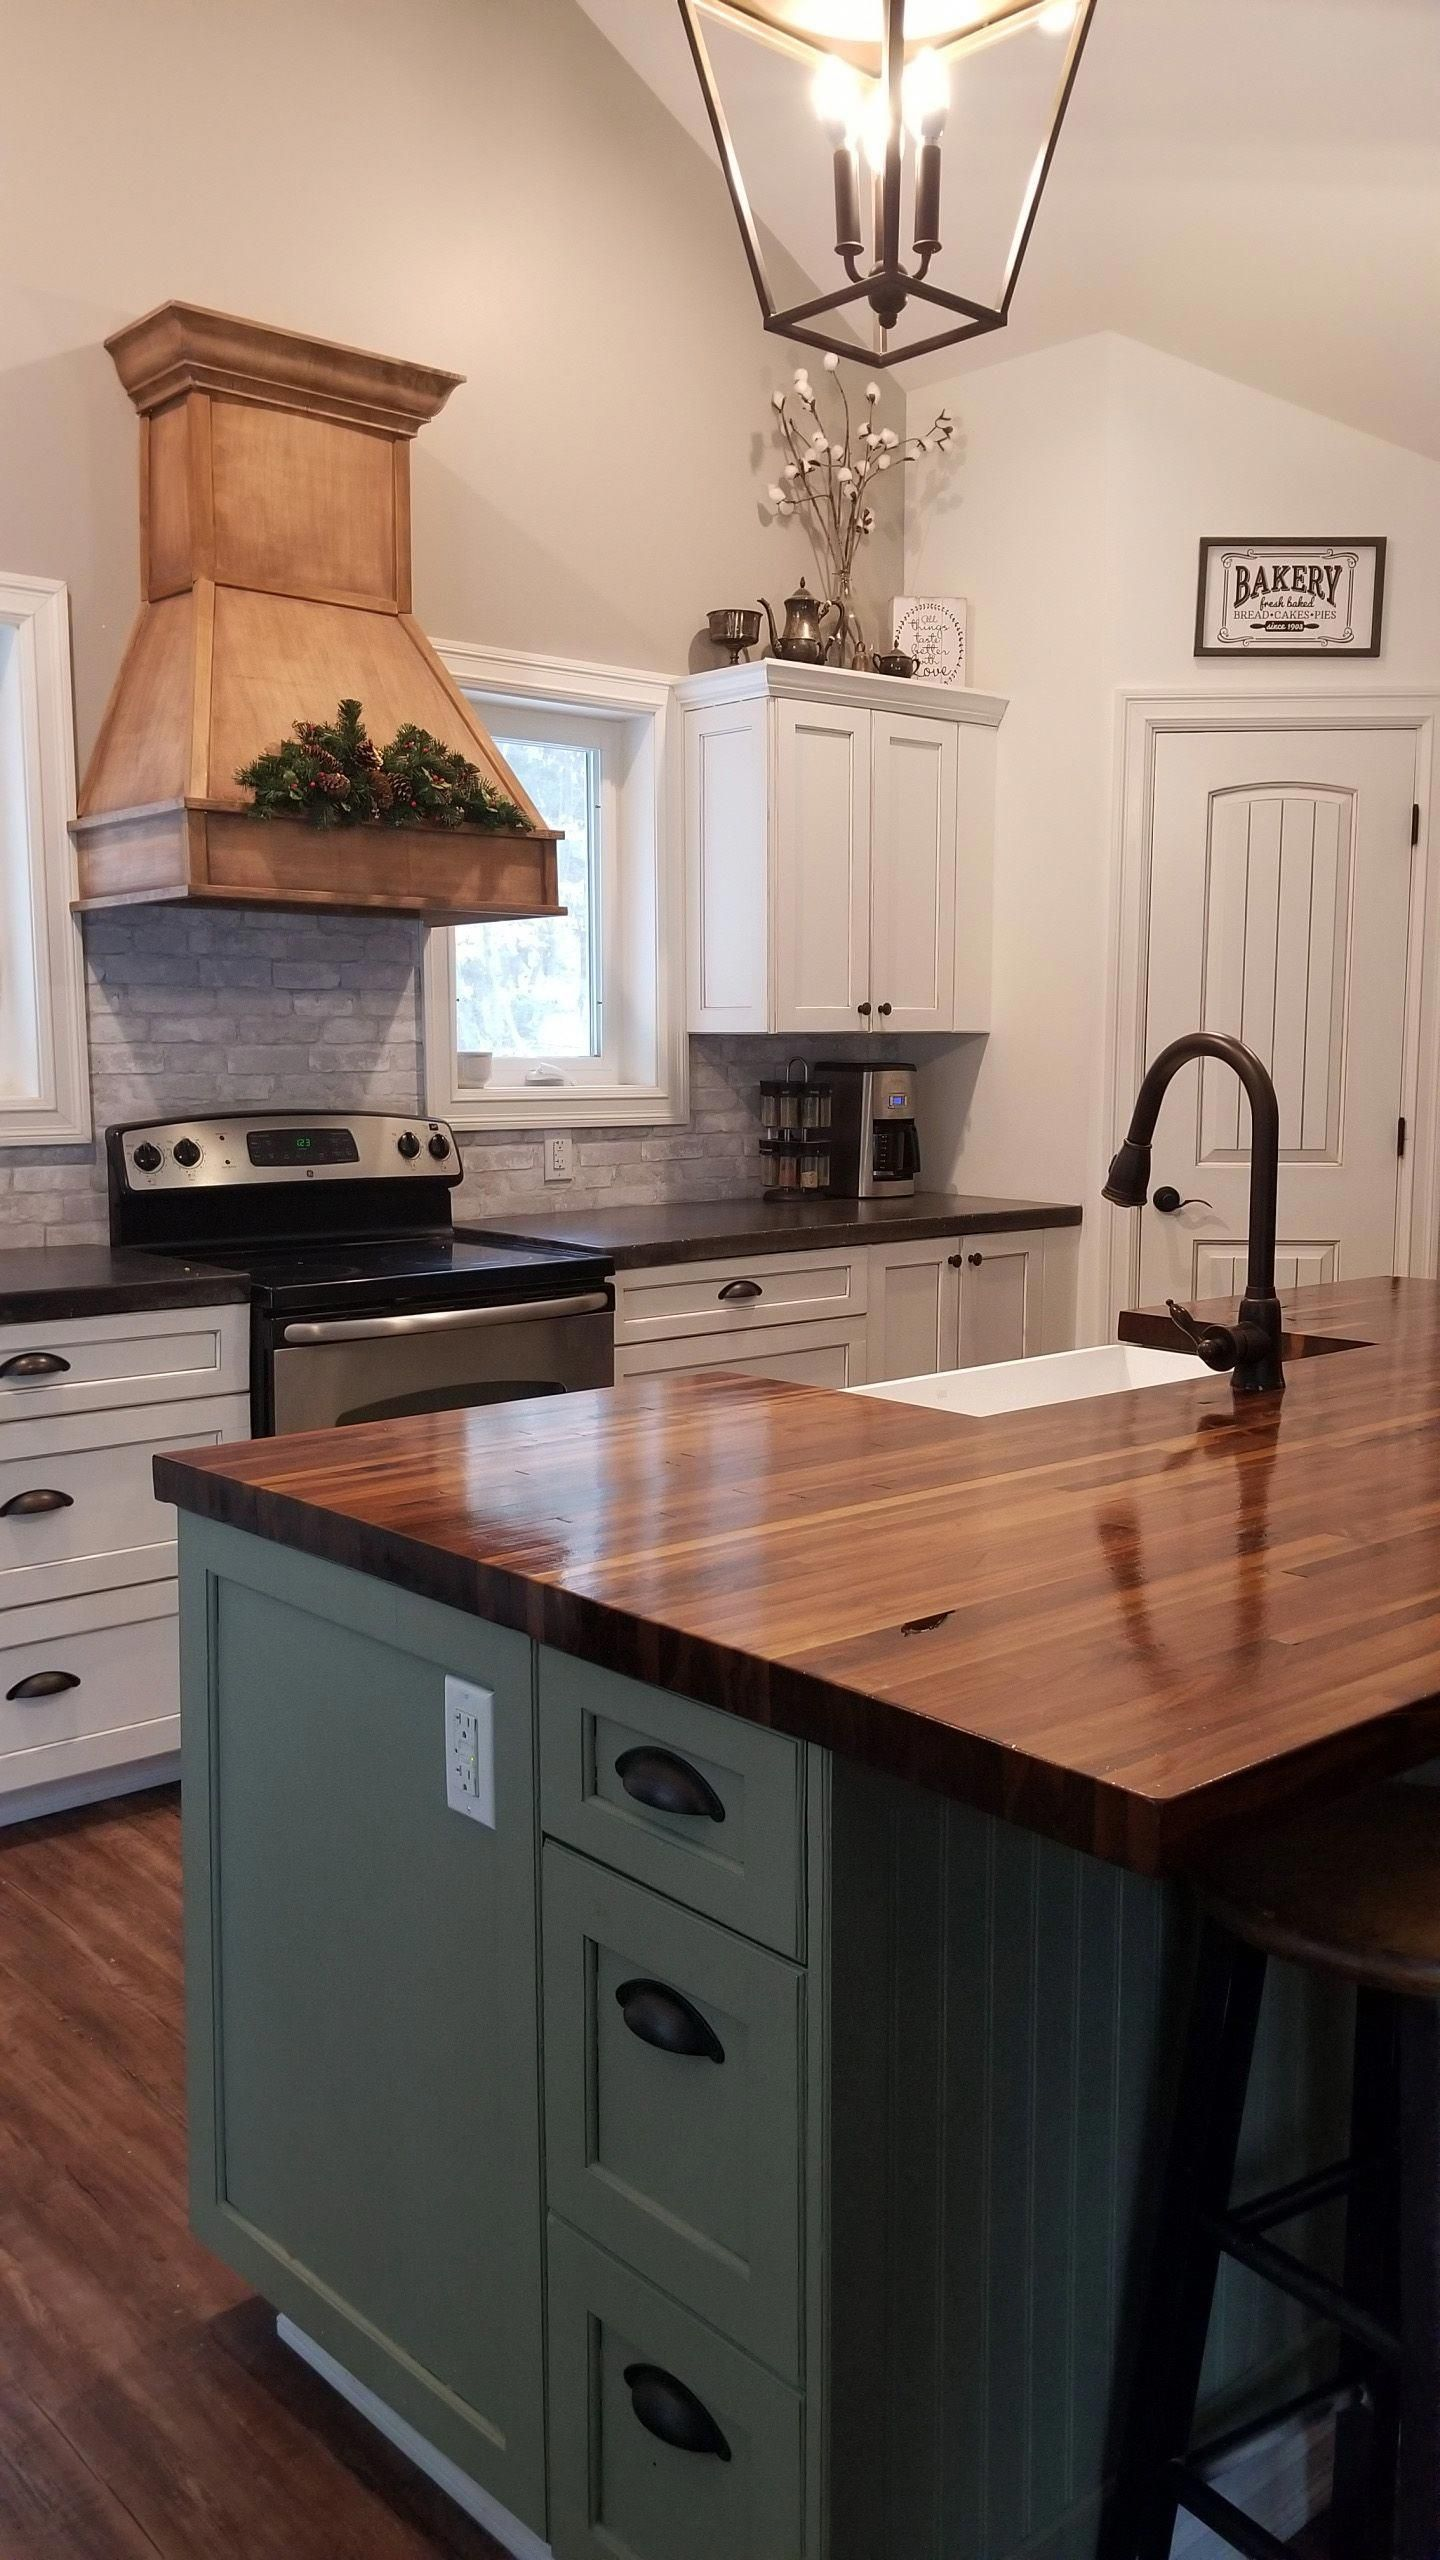 My Farmhouse Kitchen The Heart Of Our Home Every Part Of This Space Was A Diy Project Farmhouse Kitchen Countertops Kitchen Remodel Farmhouse Style Kitchen